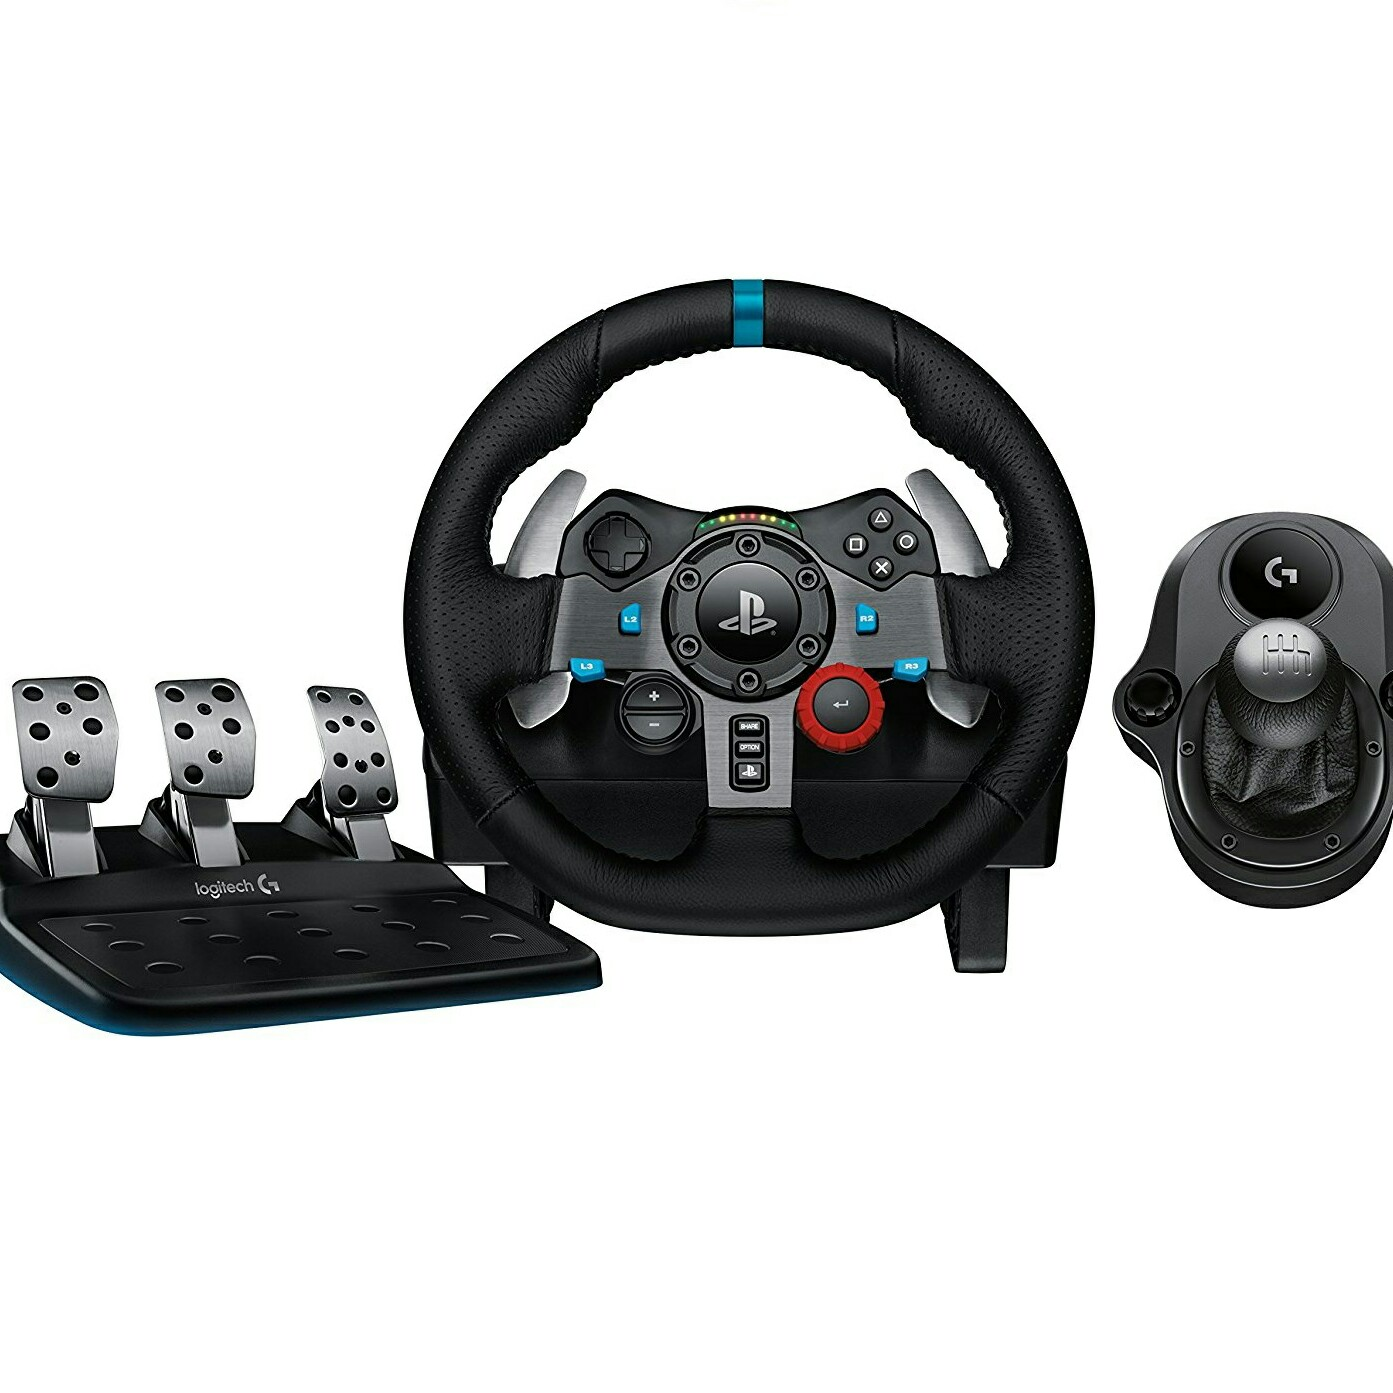 Logitech G29 driving force race wheel+G driving force shifter image